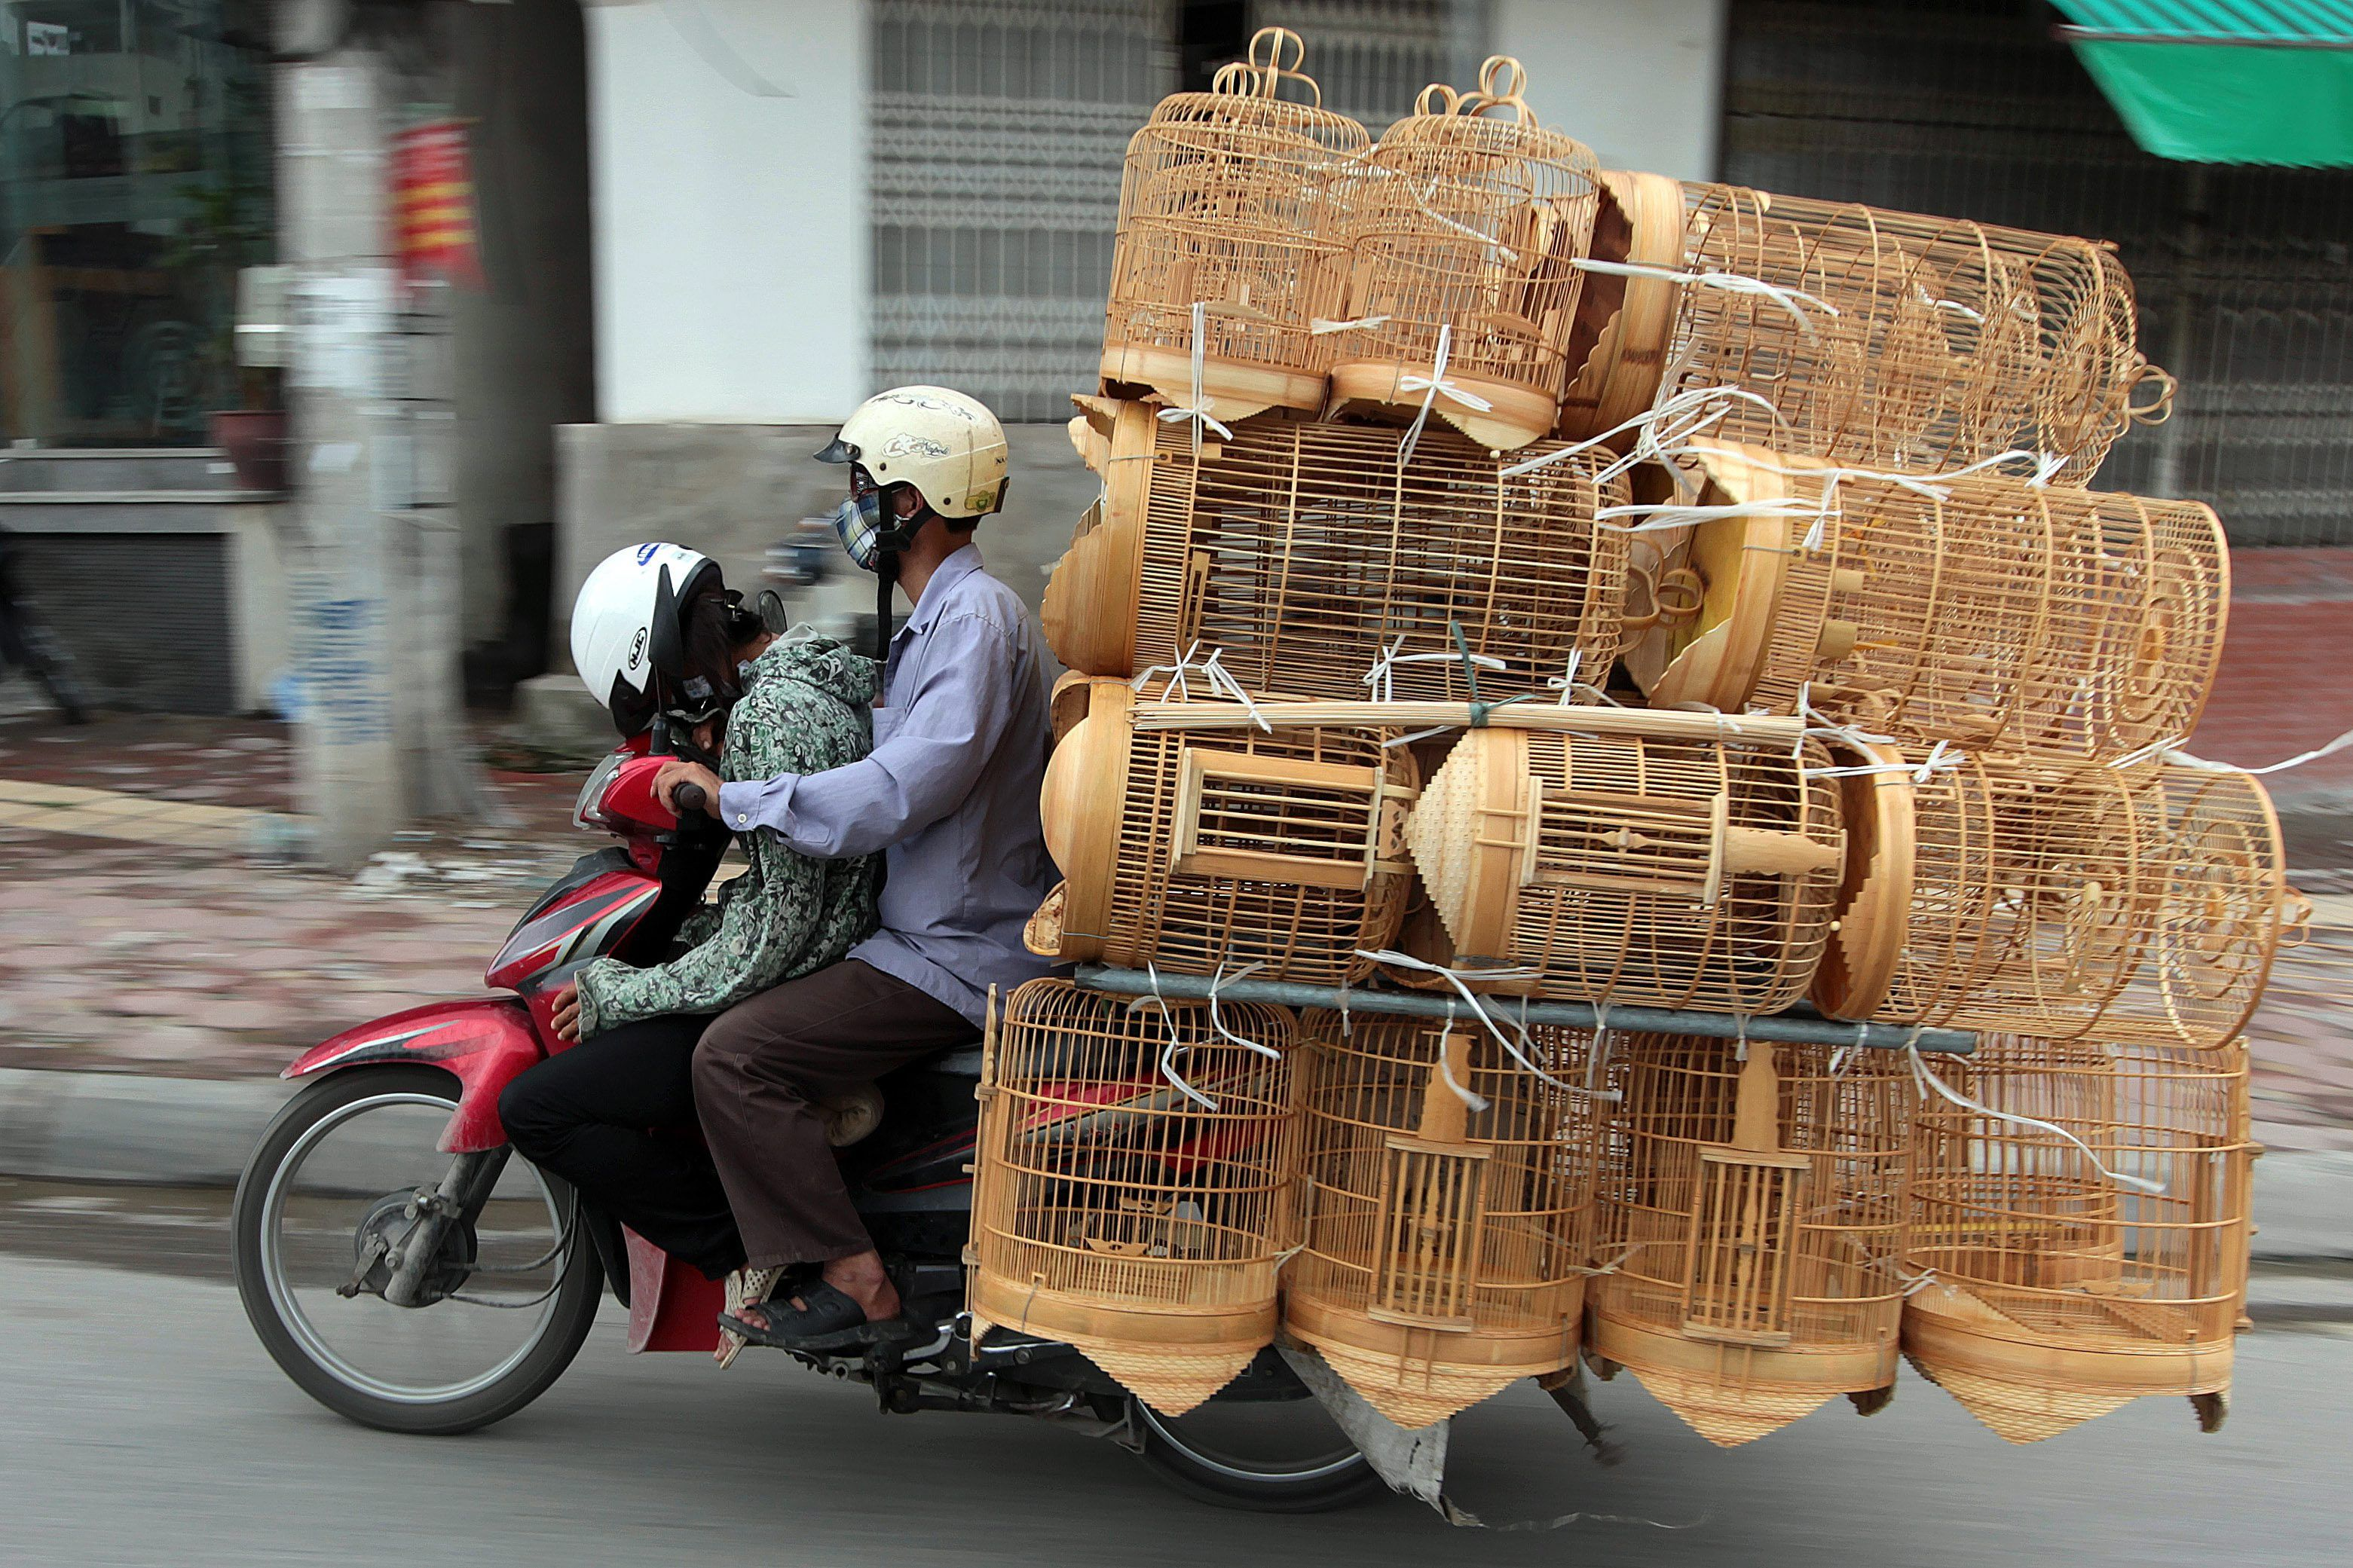 A Man Rides His Motorcycle Loaded With Bird Cages Through A Street In Hanoi Vietnam On May 23 2012 In The Fast Developing Countr Camboya Transporte Vietnam